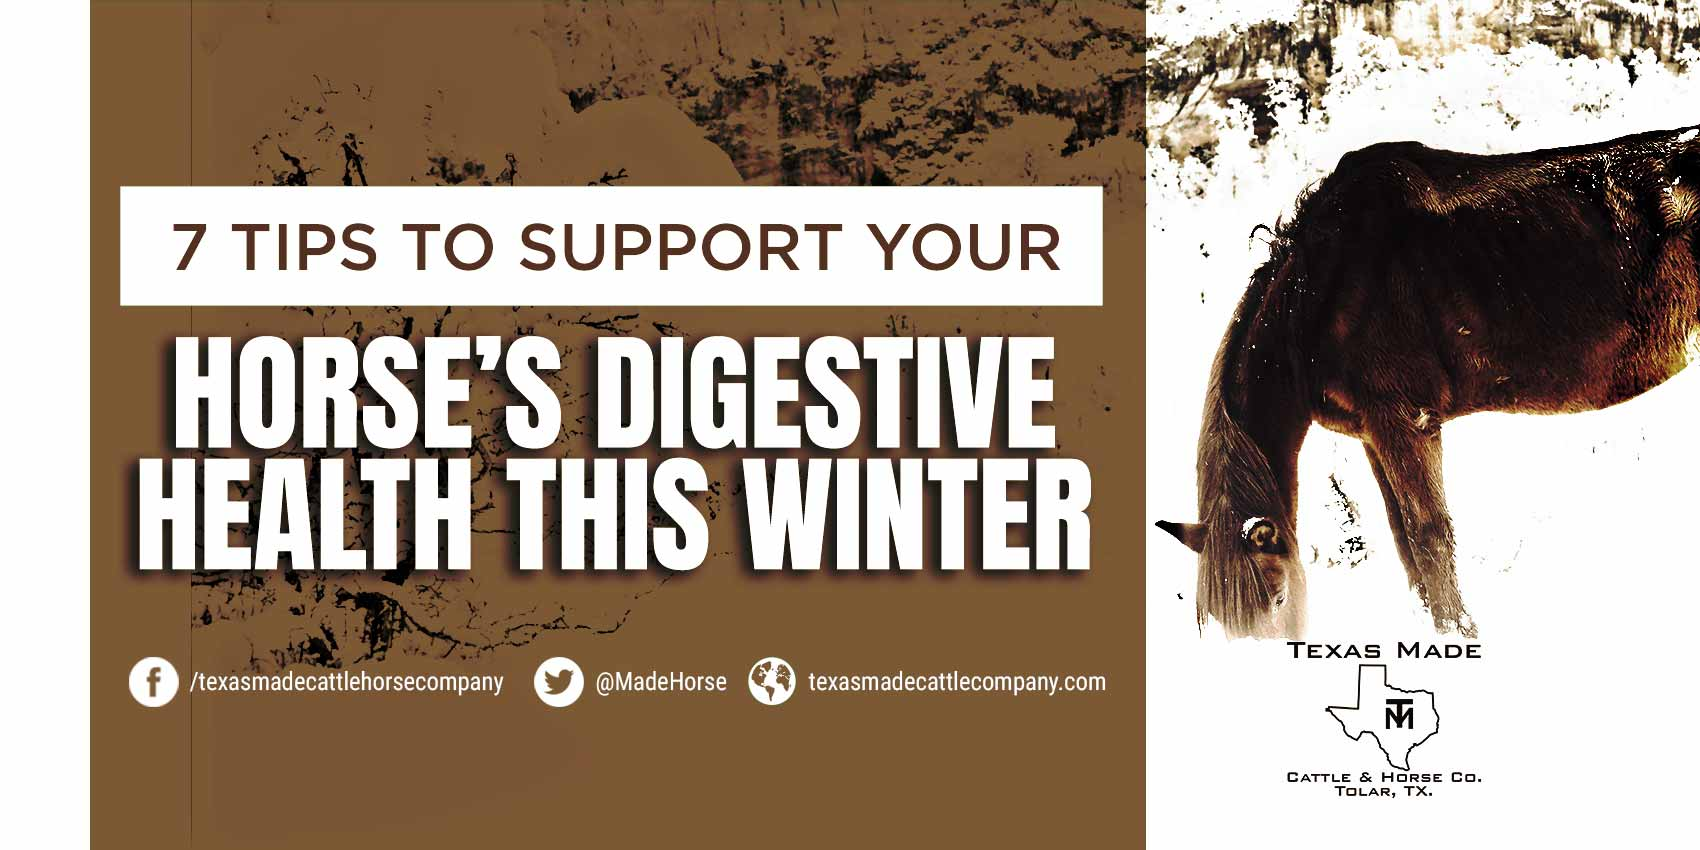 7 Tips to Support Your Horse's Digestive Health This Winter